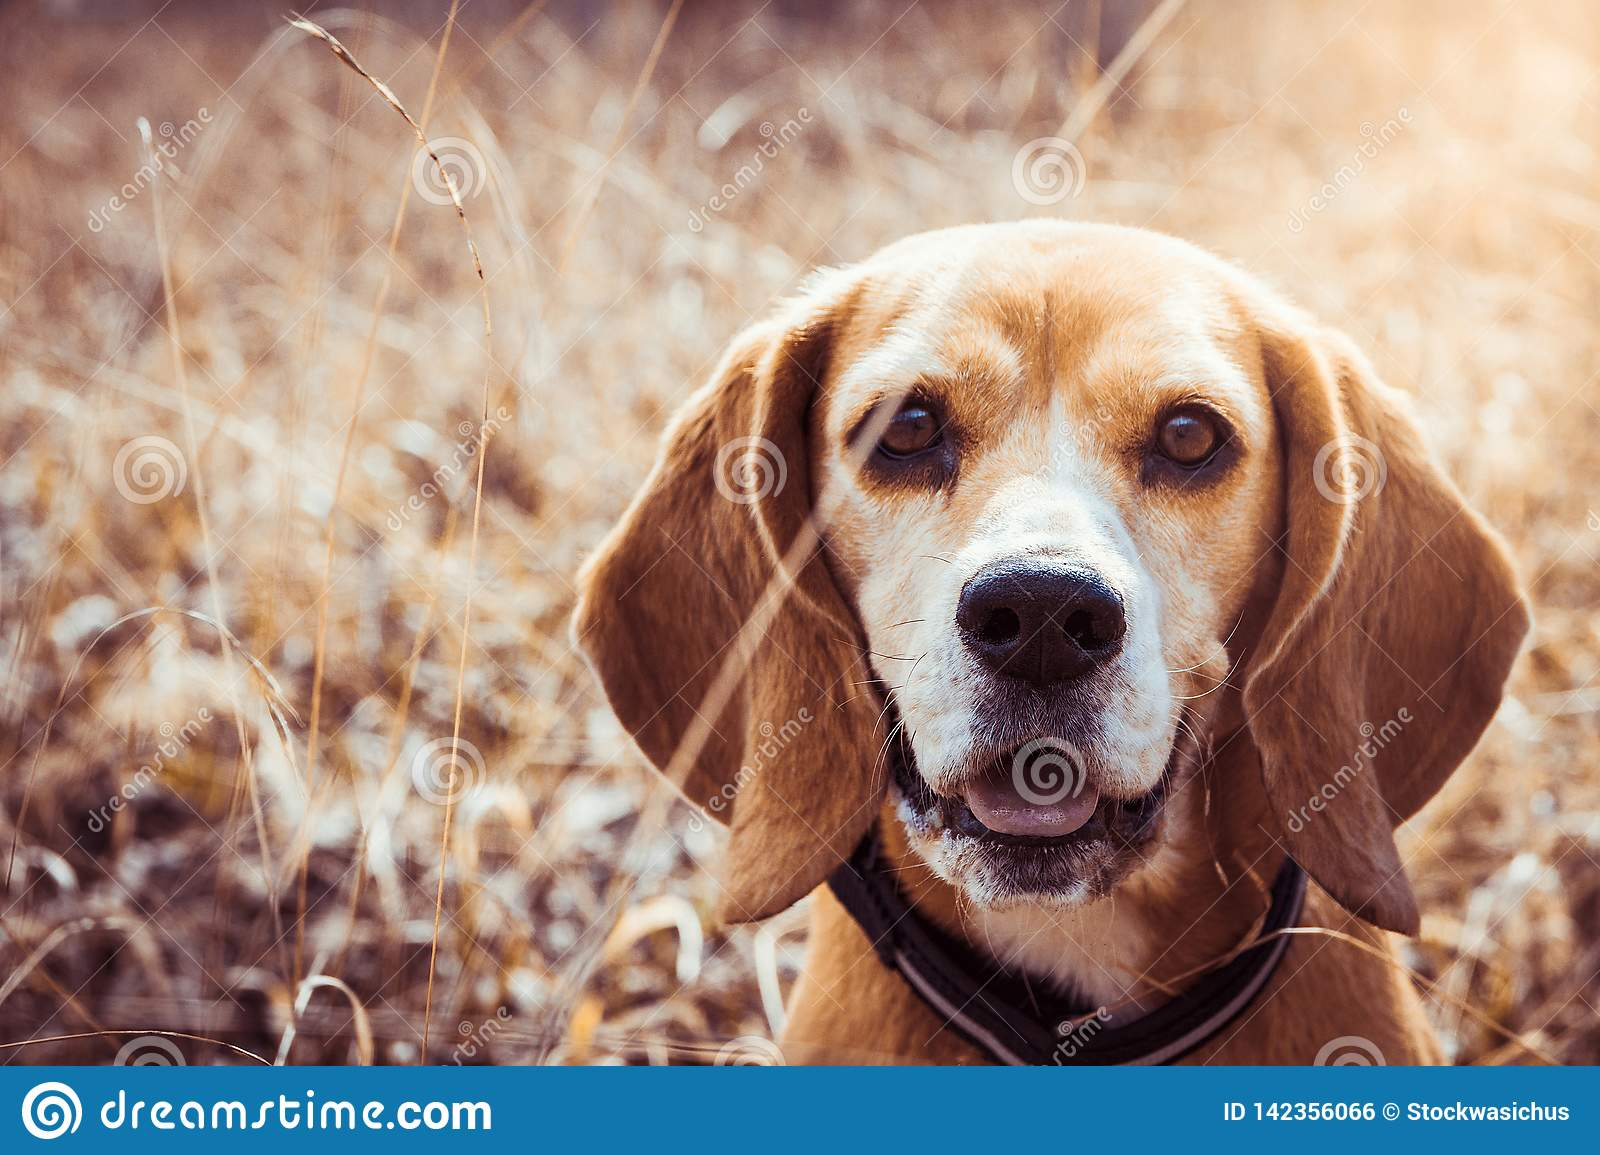 Portrait of pure breed beagle dog. Beagle close up face smiling. Happy dog